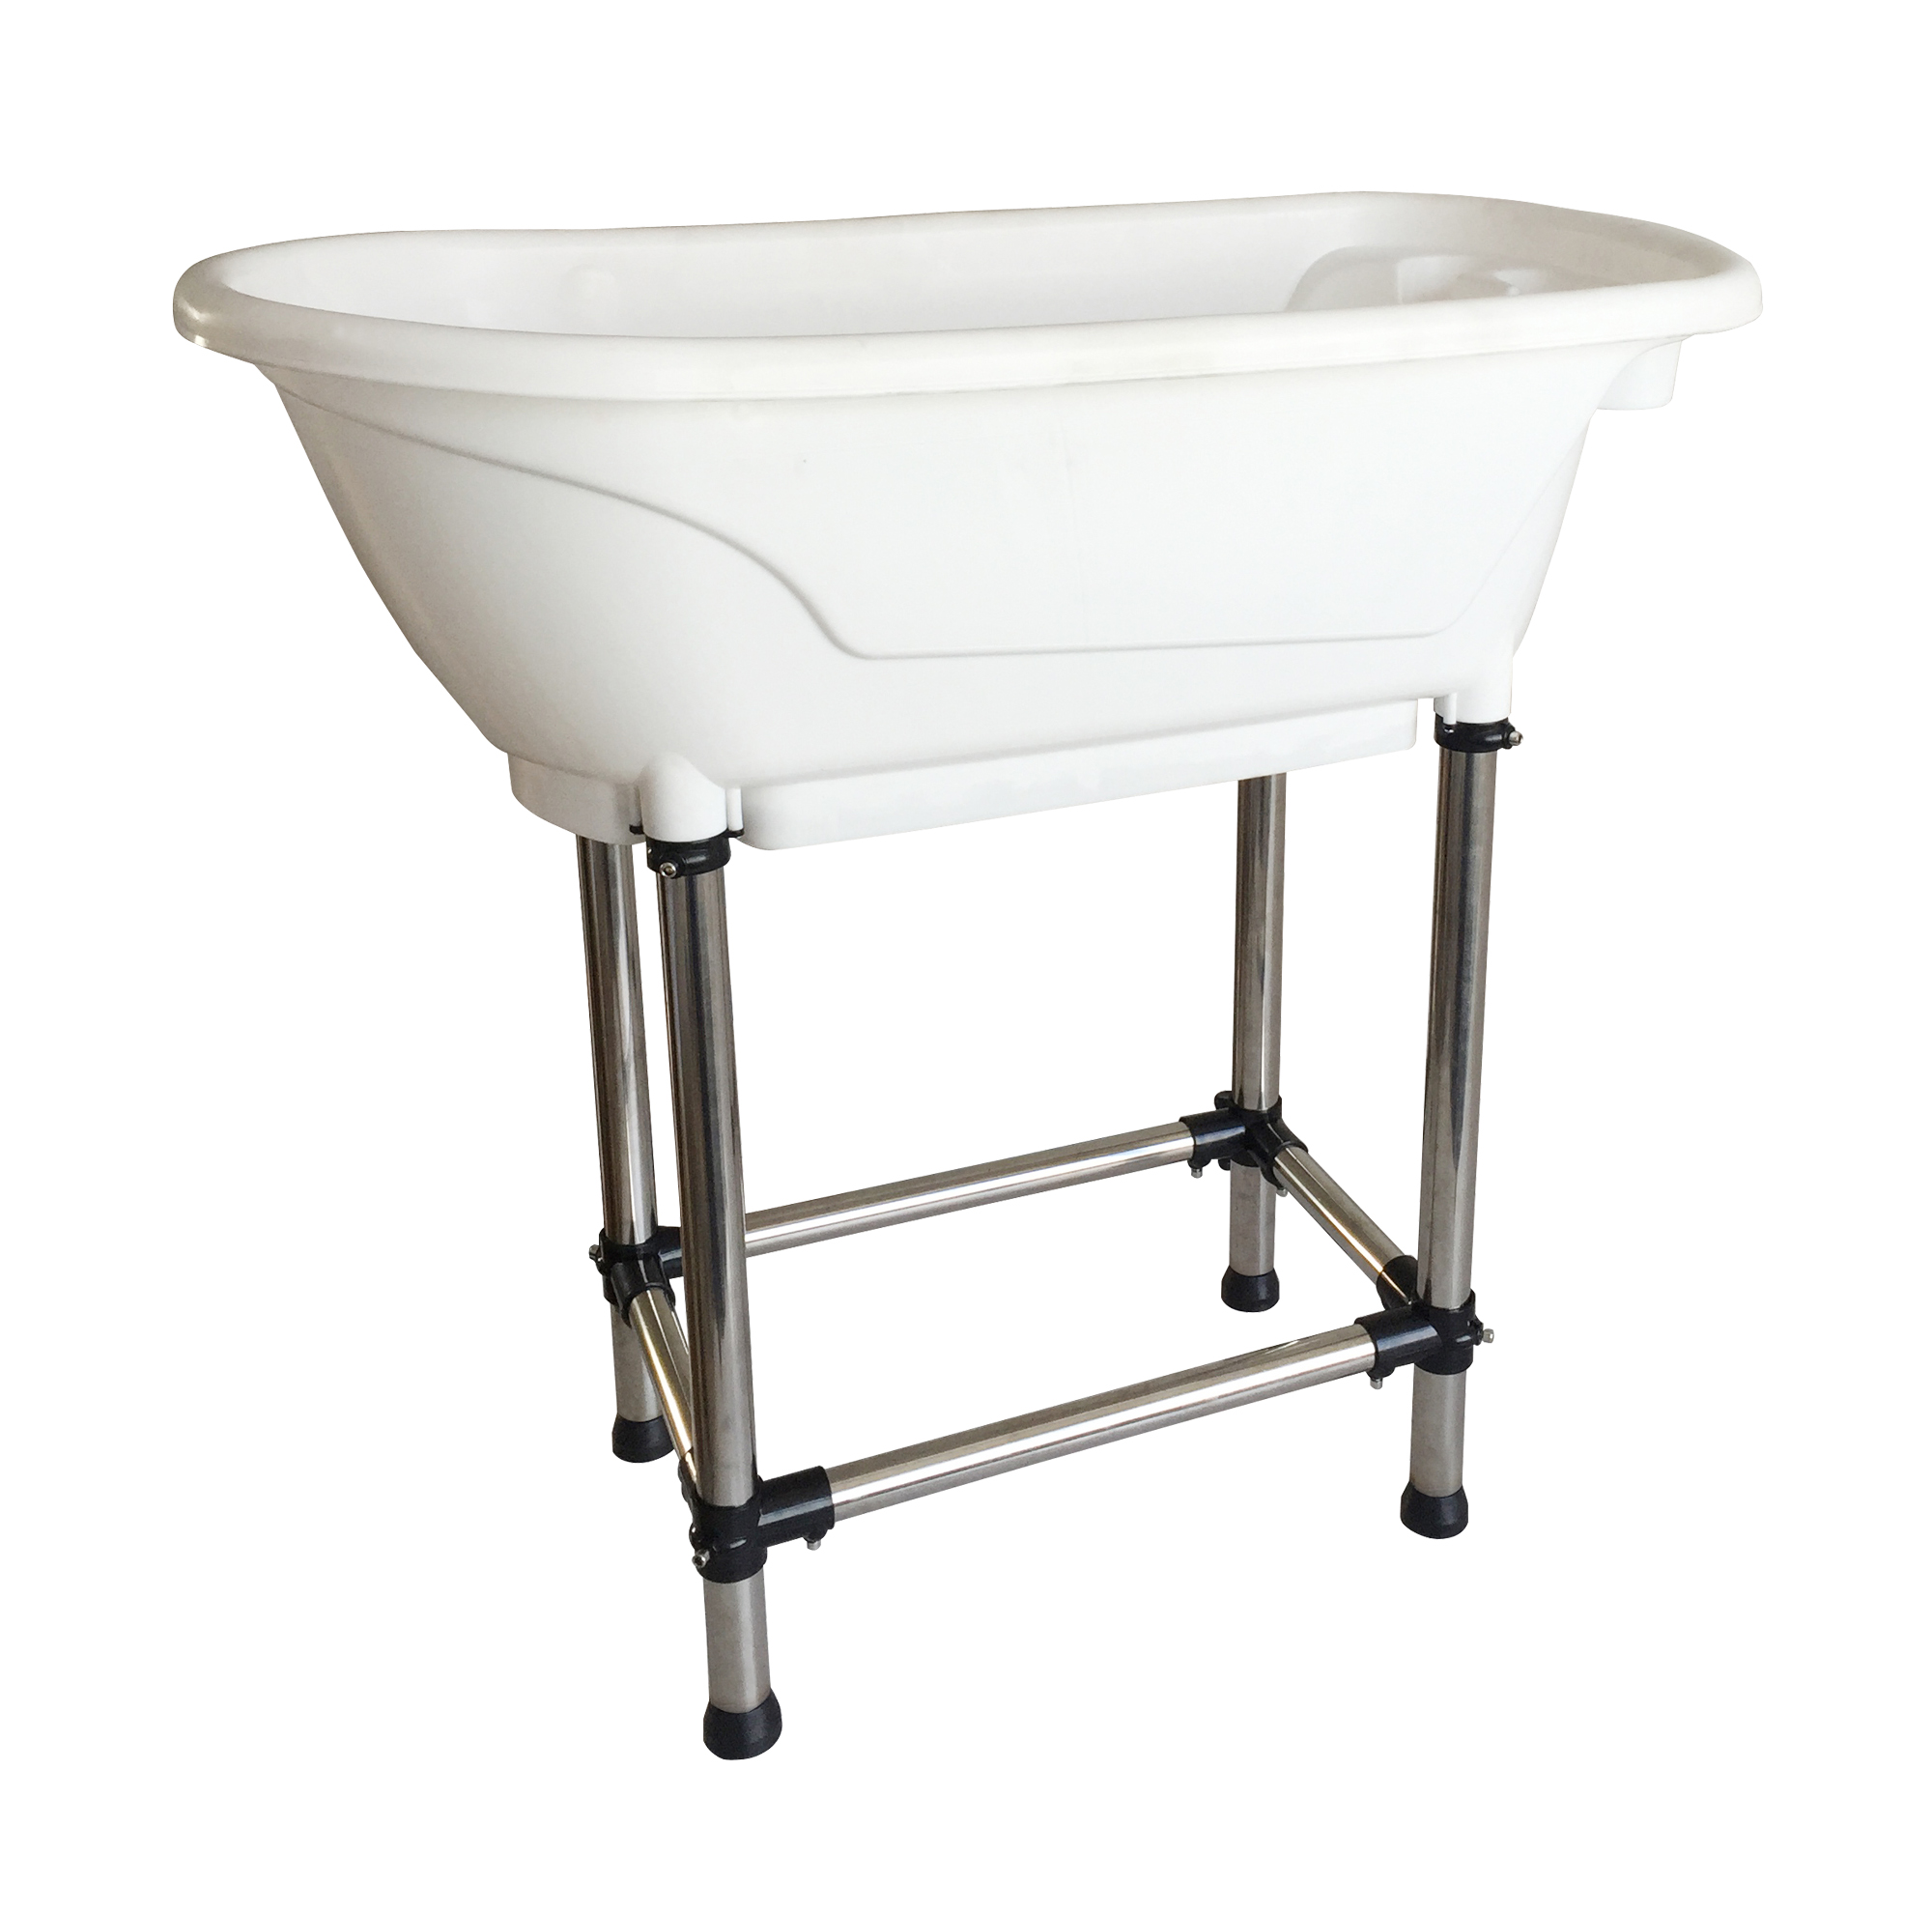 M8 Large Pet Products  Bathtub Non-slip Bath Tub For Dog And Cat Not Bend Over With High Stainless Steel Legs Easy Install